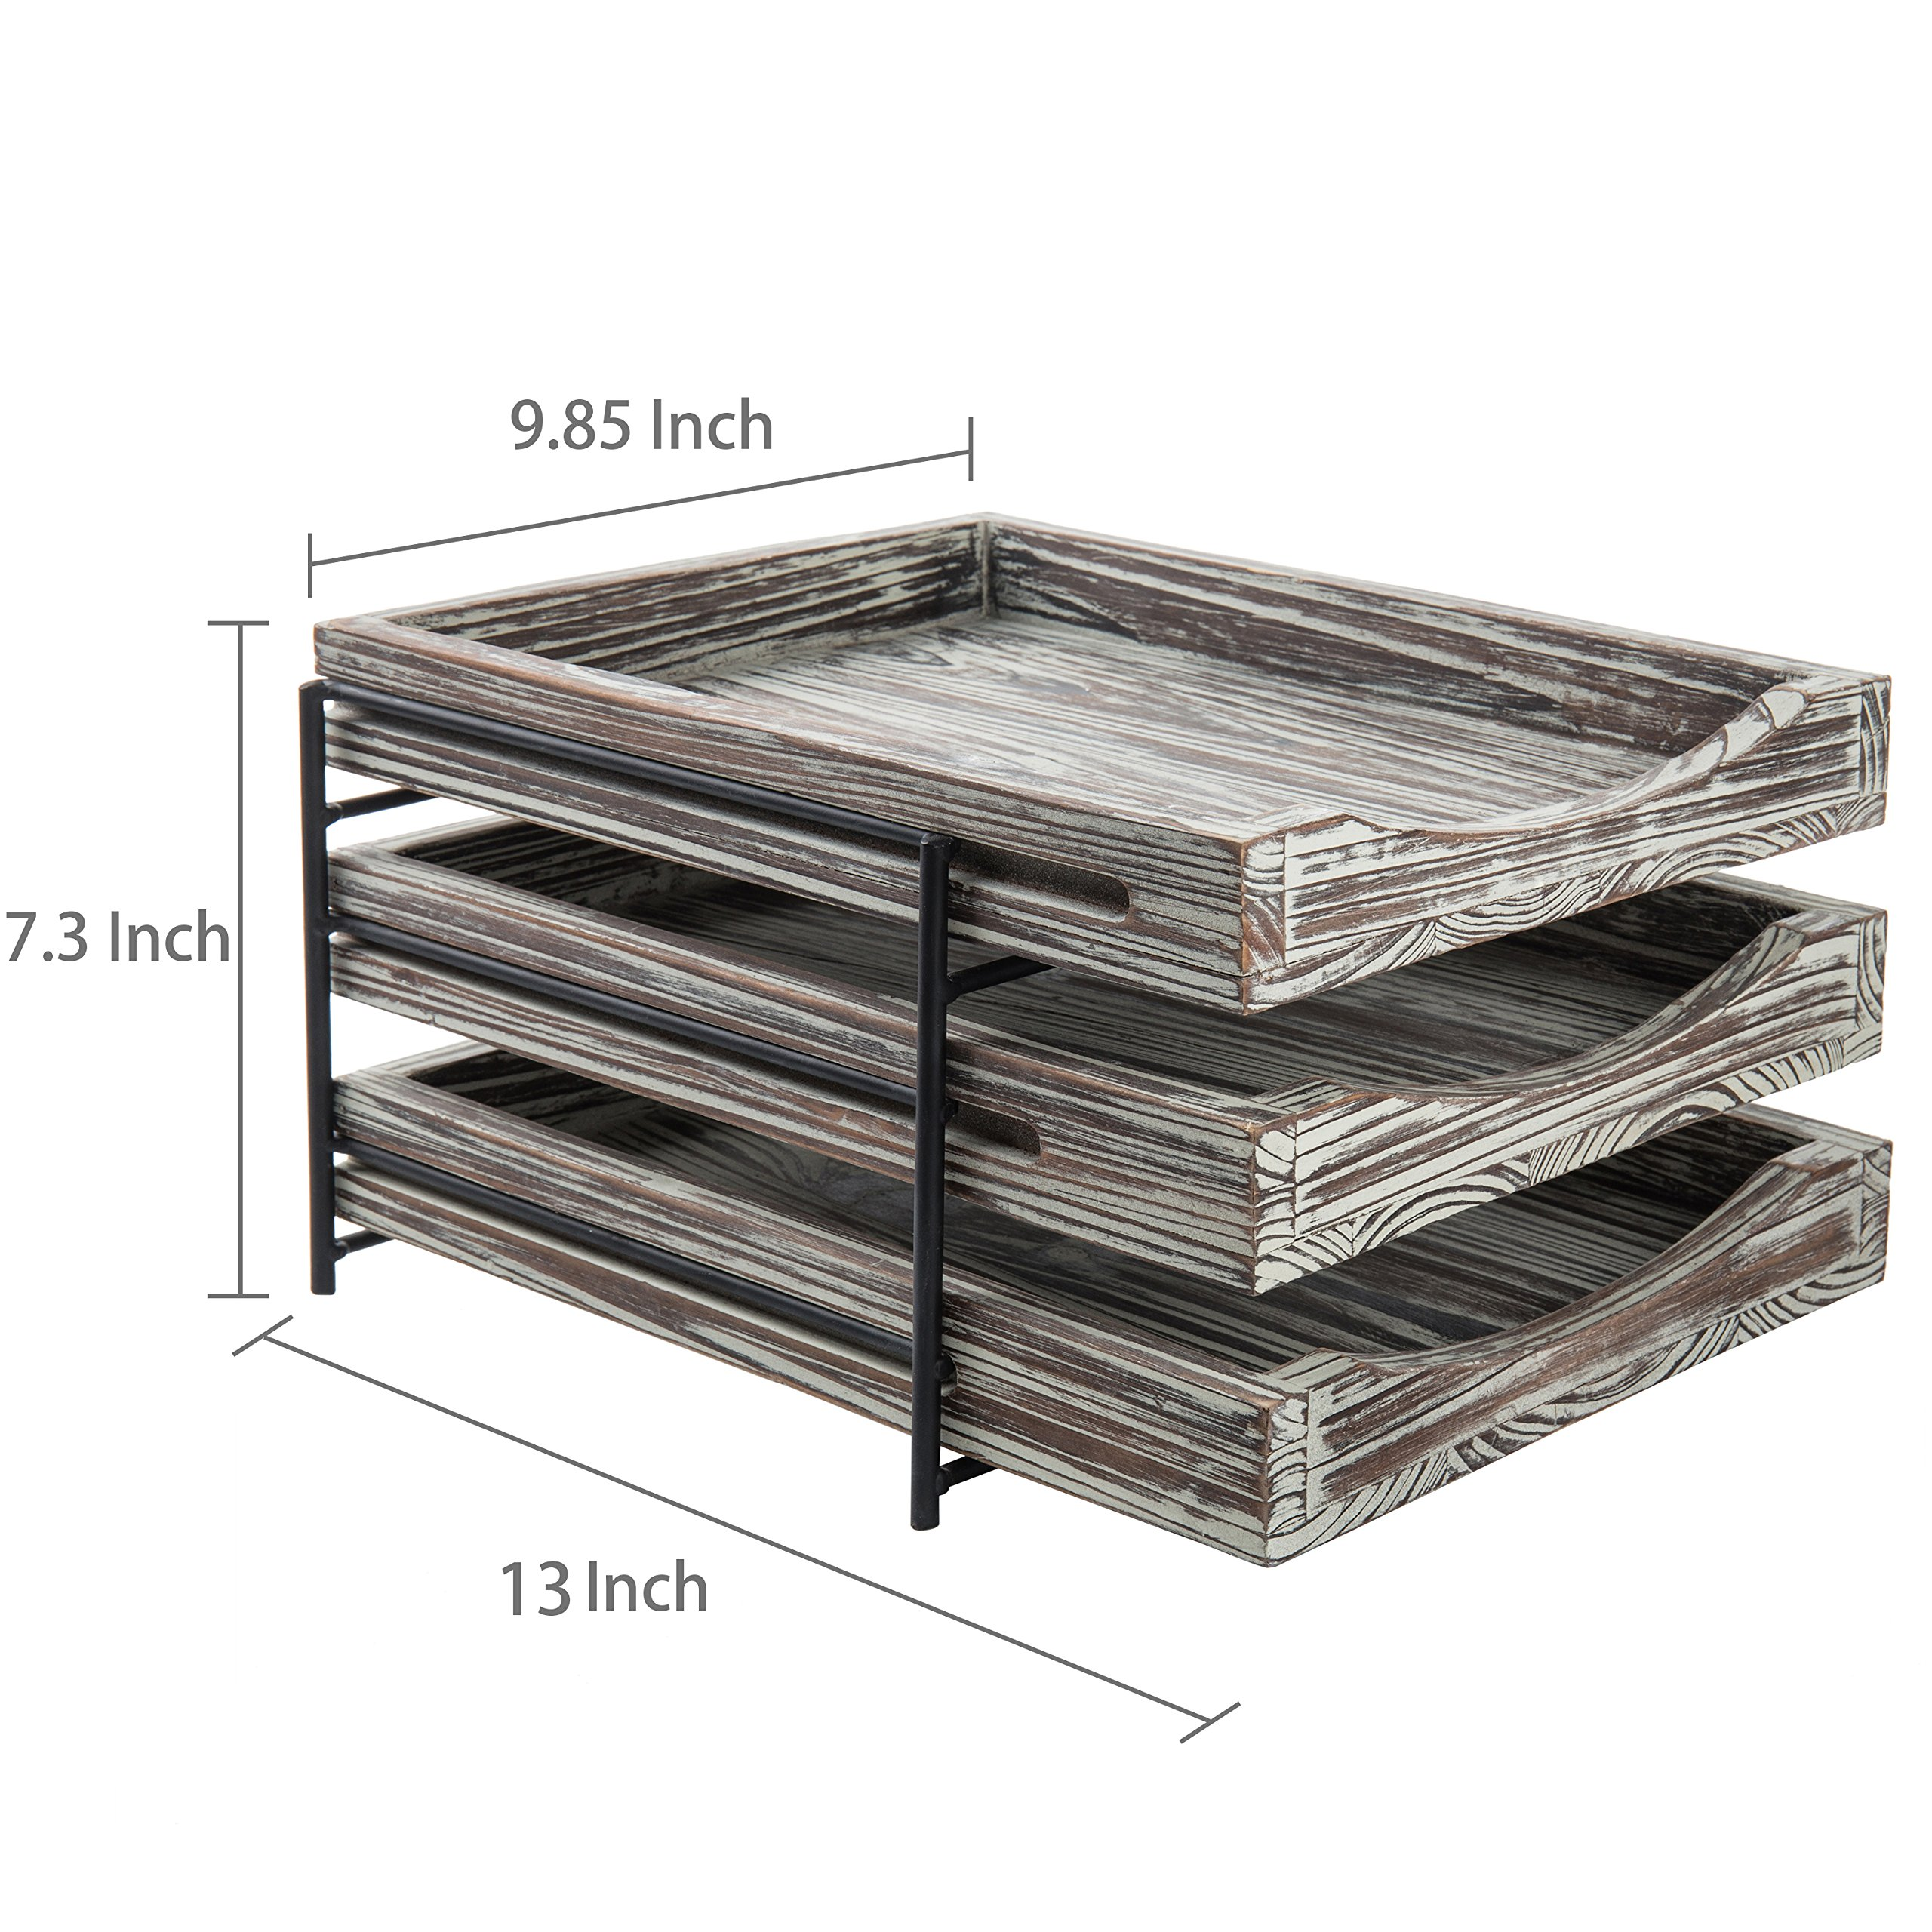 MyGift 3-Tier Rustic Torched Wood & Black Metal Document Organizer with Sliding Trays by MyGift (Image #7)